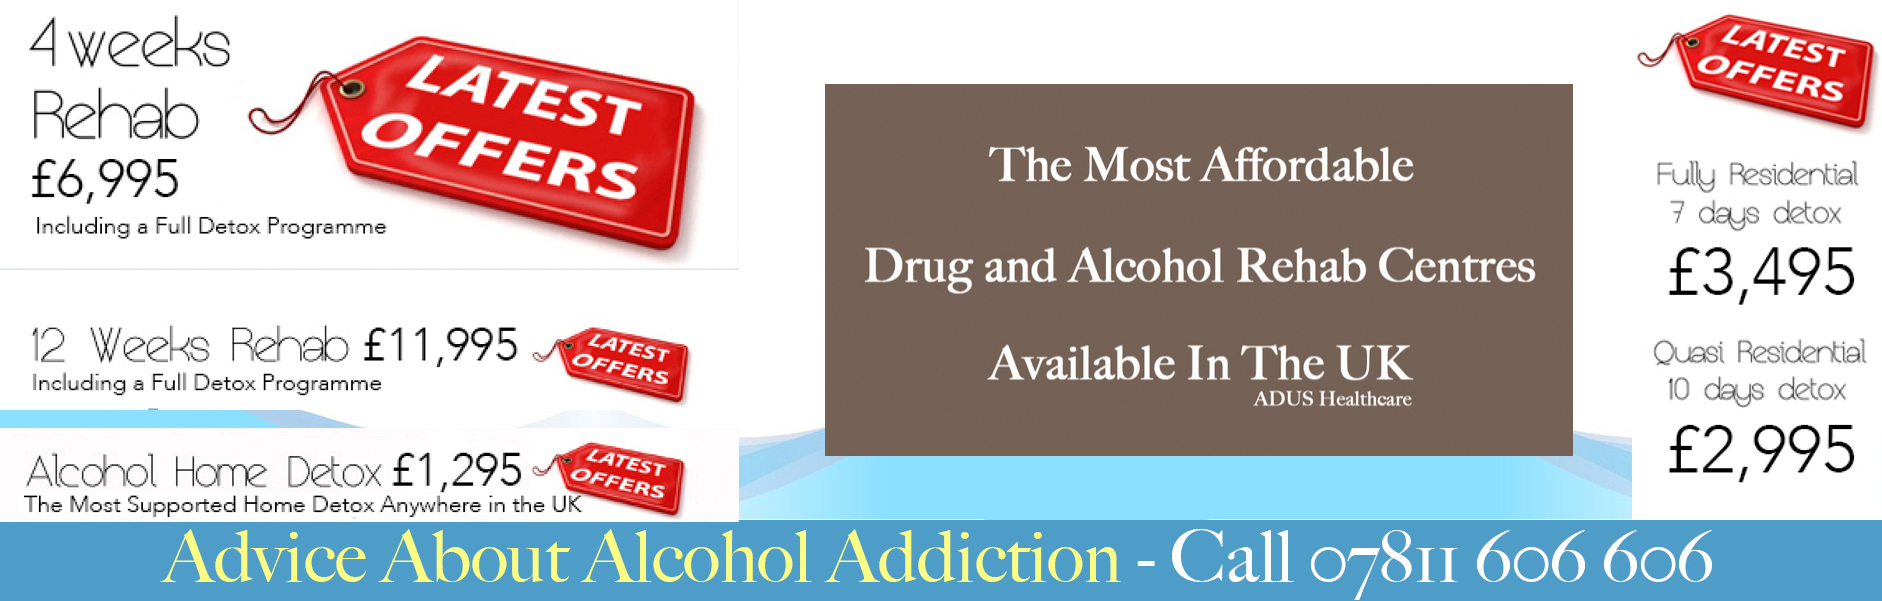 The sinclair method. online alcohol rehab offers